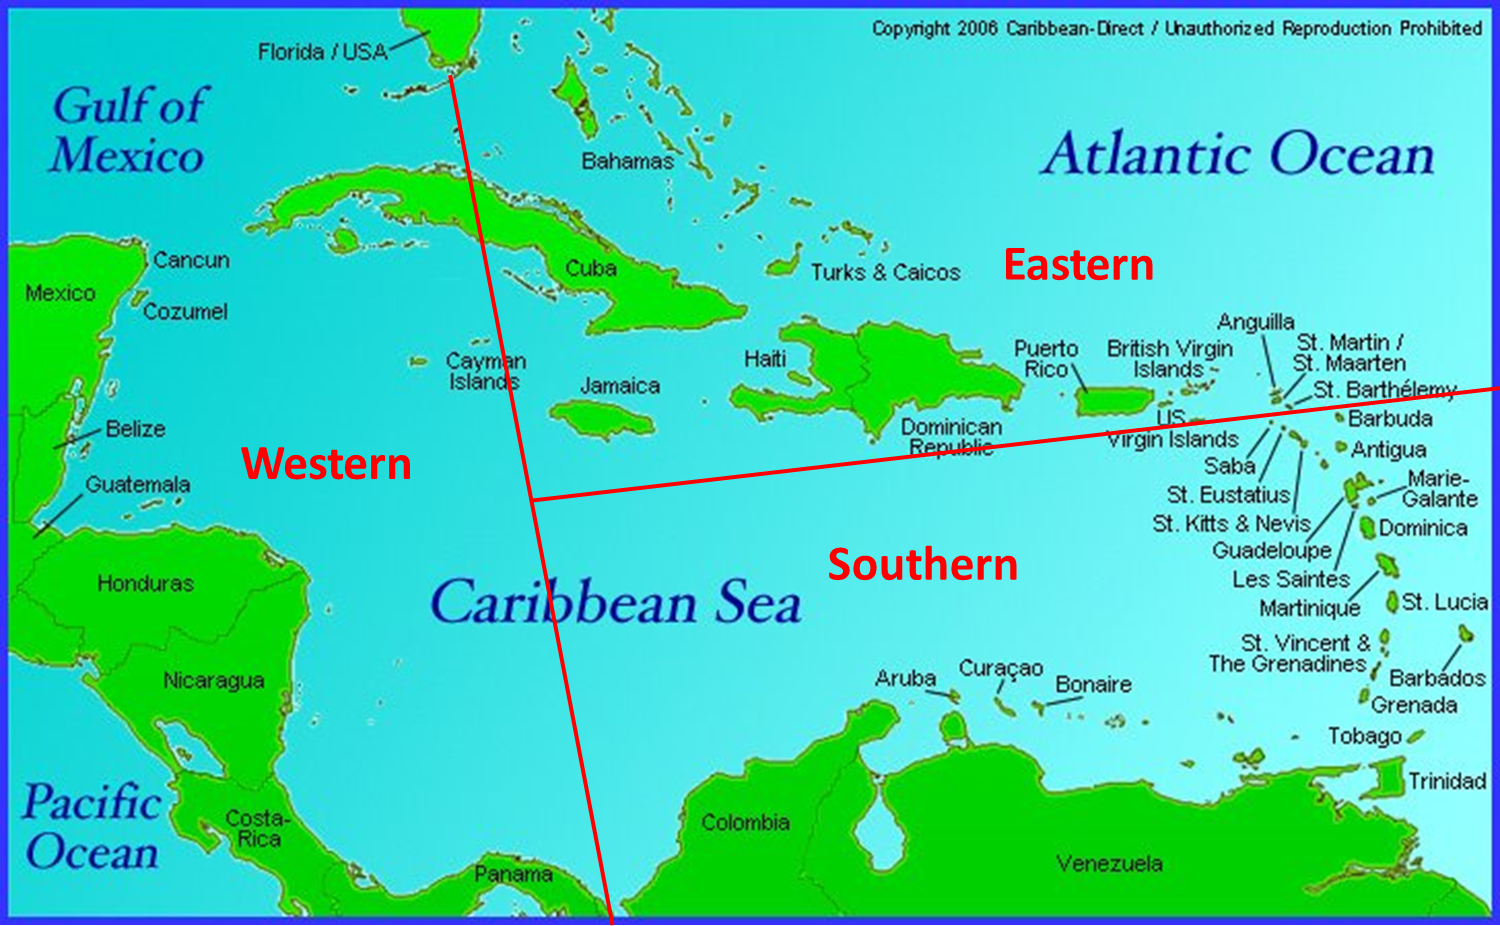 12 Caribbean Maps You Need | Caribbean Islands Map - Adventugo on